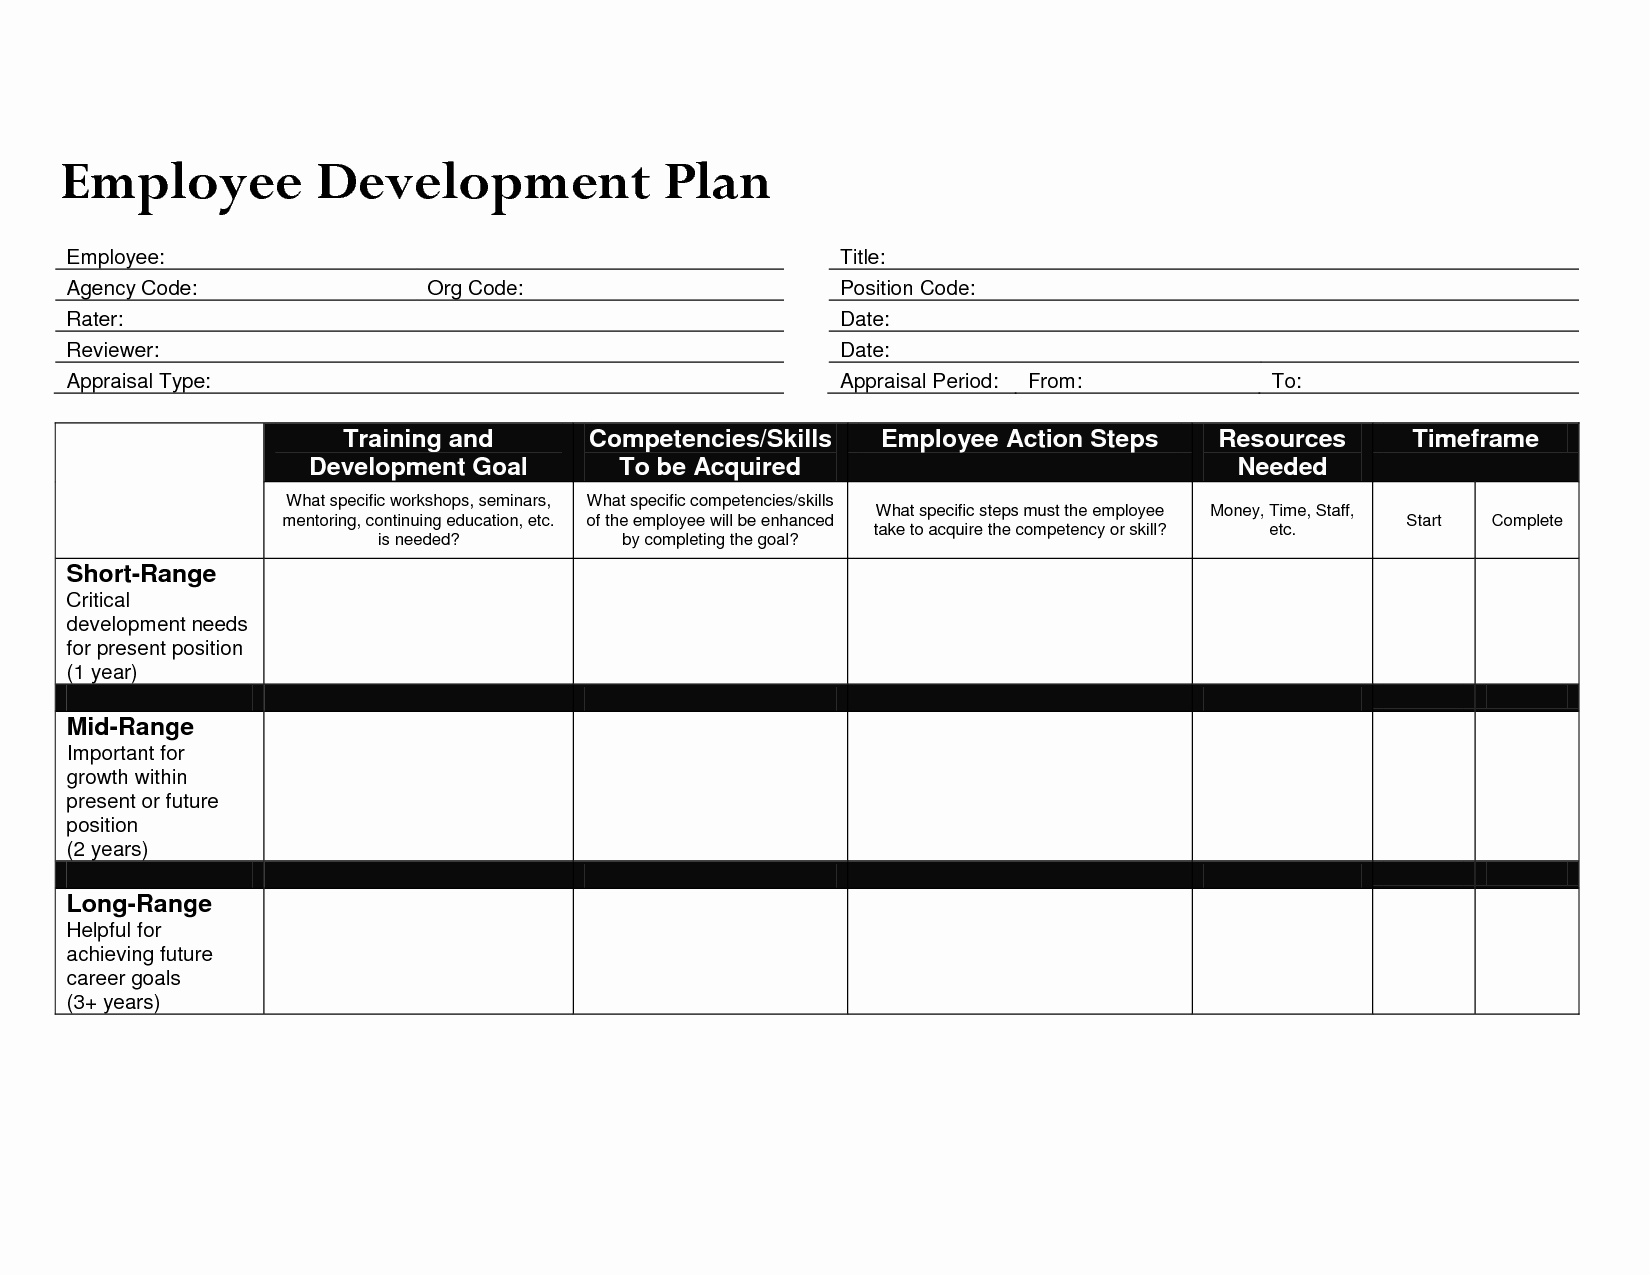 Employee Development Plans Templates Awesome Employee Development Plan Templates